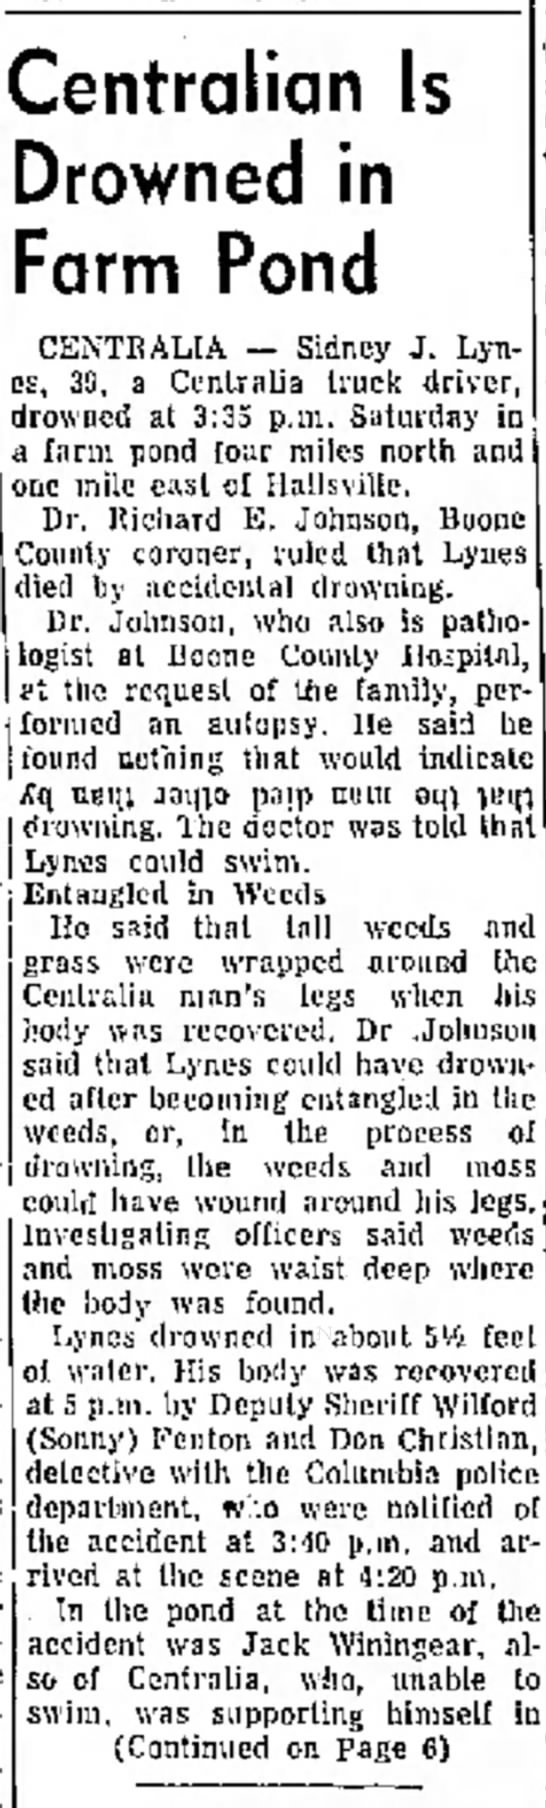 Sidney J Lynes Jr. newspaper article about death - Brown, with Herschei Everett Mrs. W. R, Newby,...